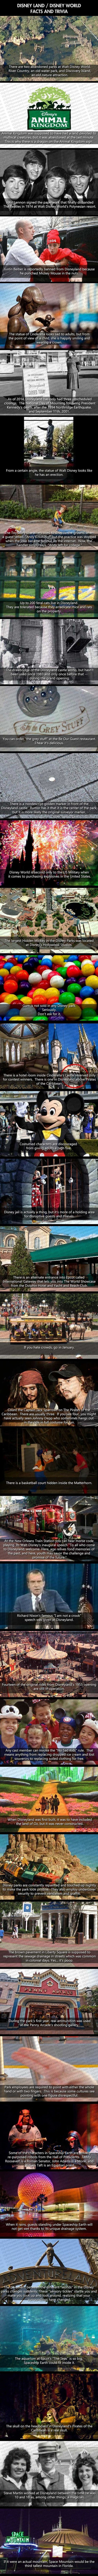 Different facts about Disney World. We actually went to River Country and Discovery Island when I was a kid! Sad that they don't exist anymore.